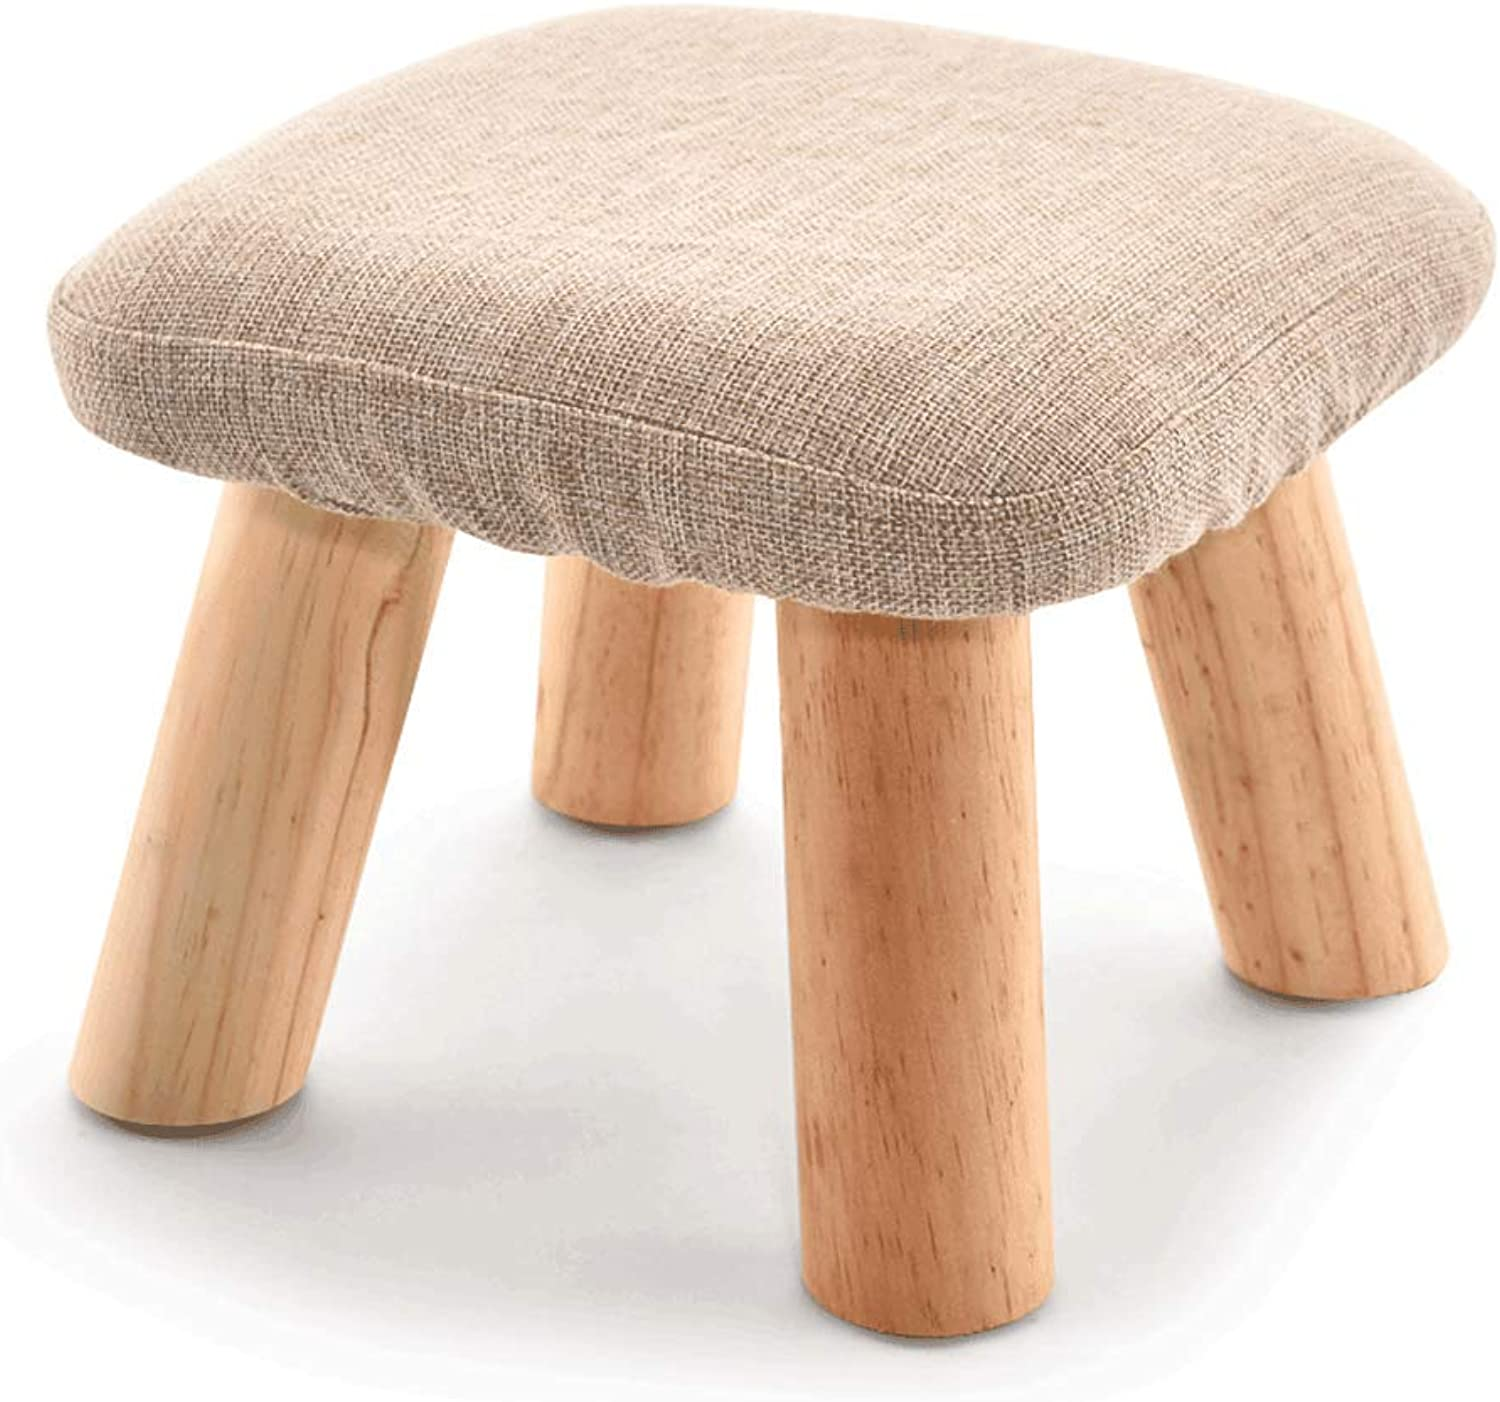 LXYFMS Small Stool Wood Sofa Bench Fabric Small Bench Wooden bench (color   B, Size   21  28CM)